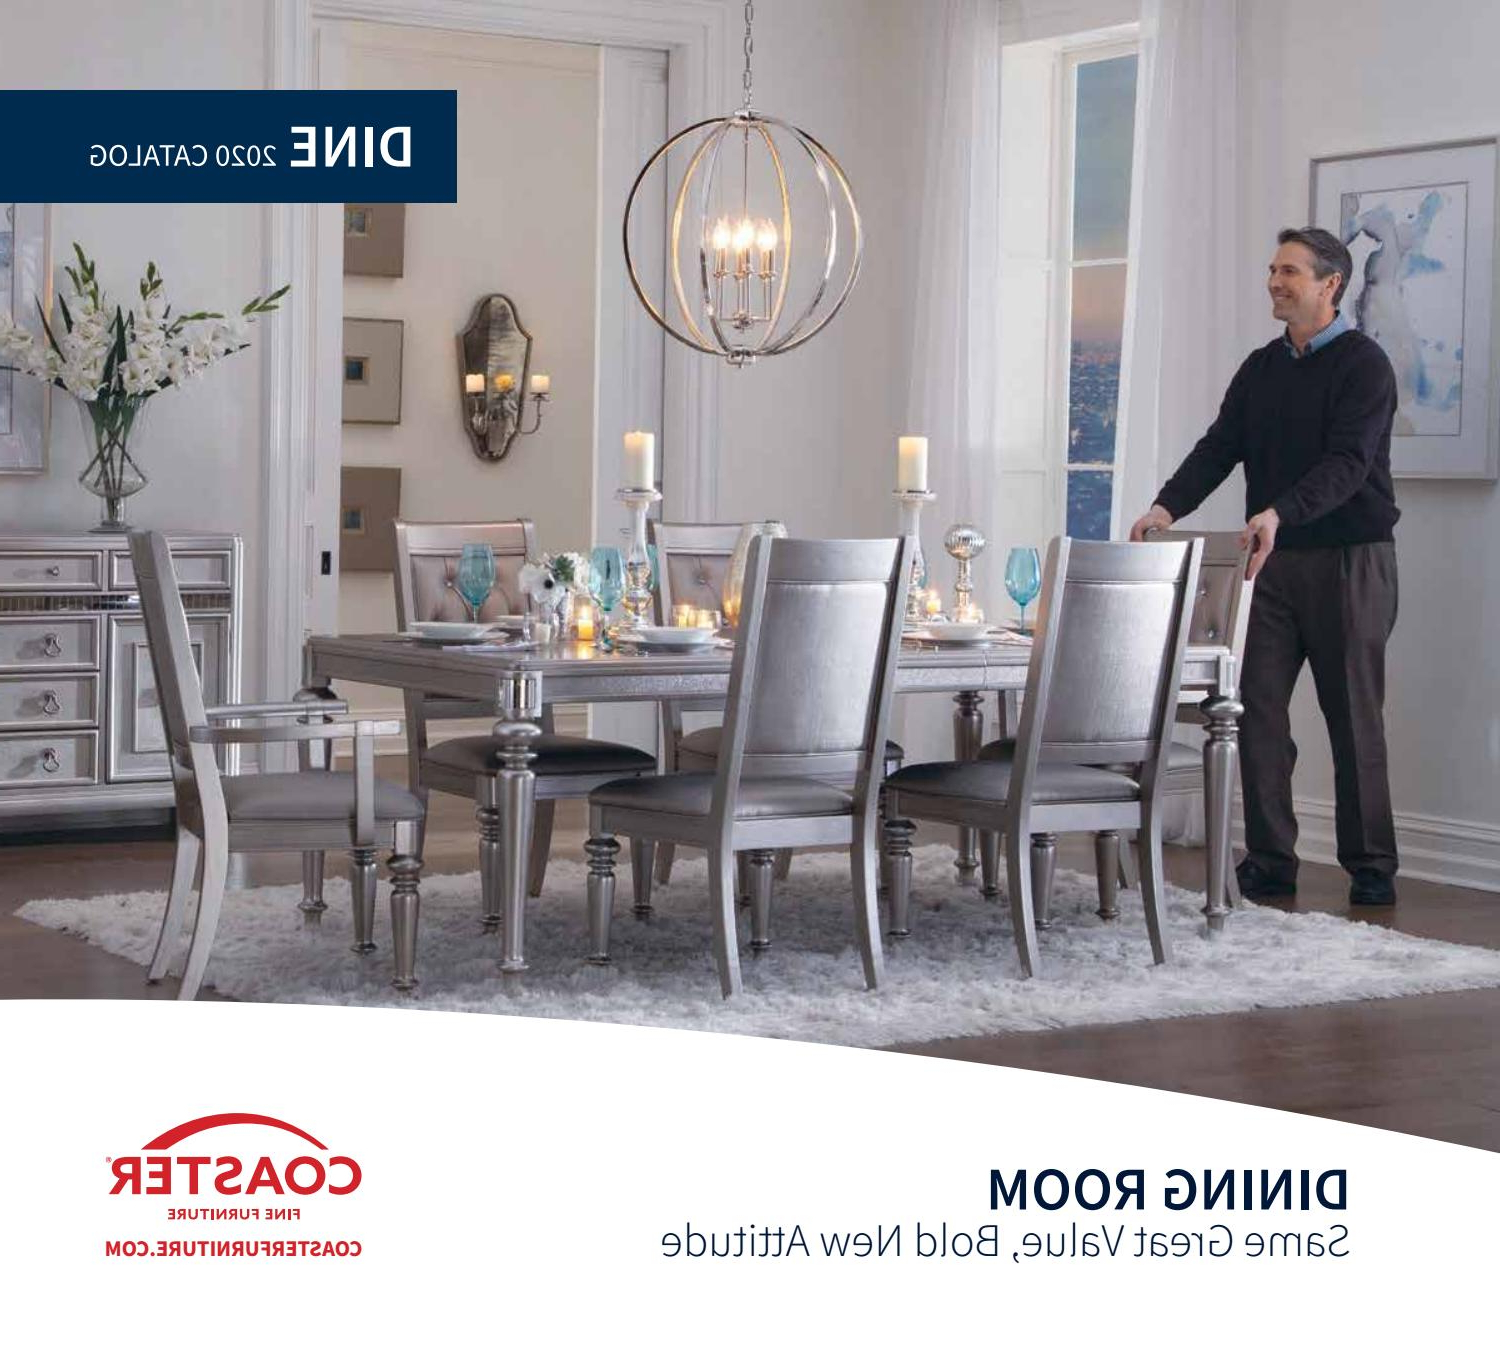 2020 Coaster Catalog Dinecoaster Company Of America - Issuu pertaining to 2019 Coaster Contemporary 6-Seating Rectangular Casual Dining Tables